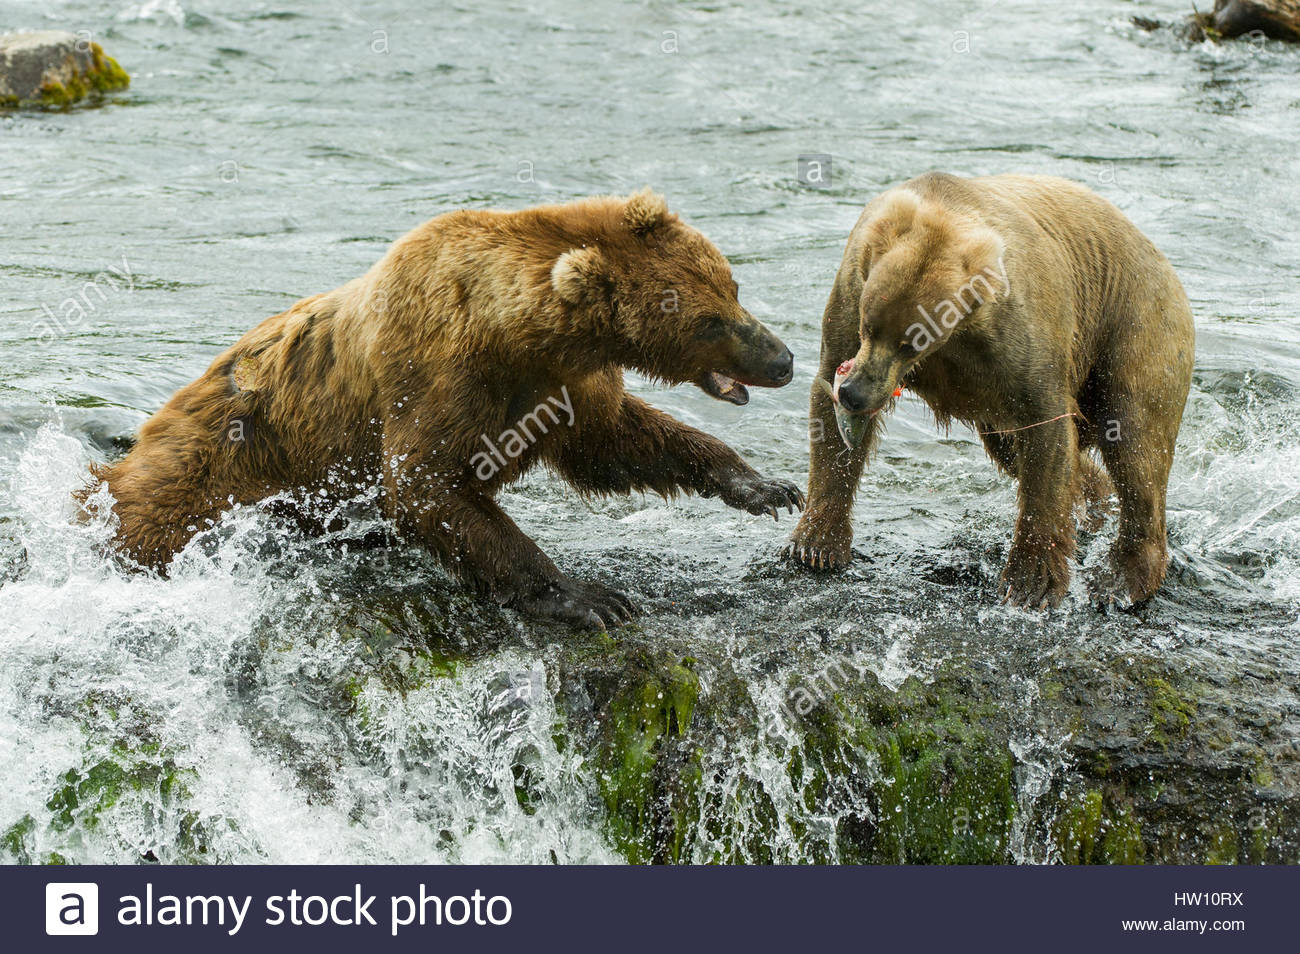 Two grizzly bears fight over a salmon in the river. - Stock Image